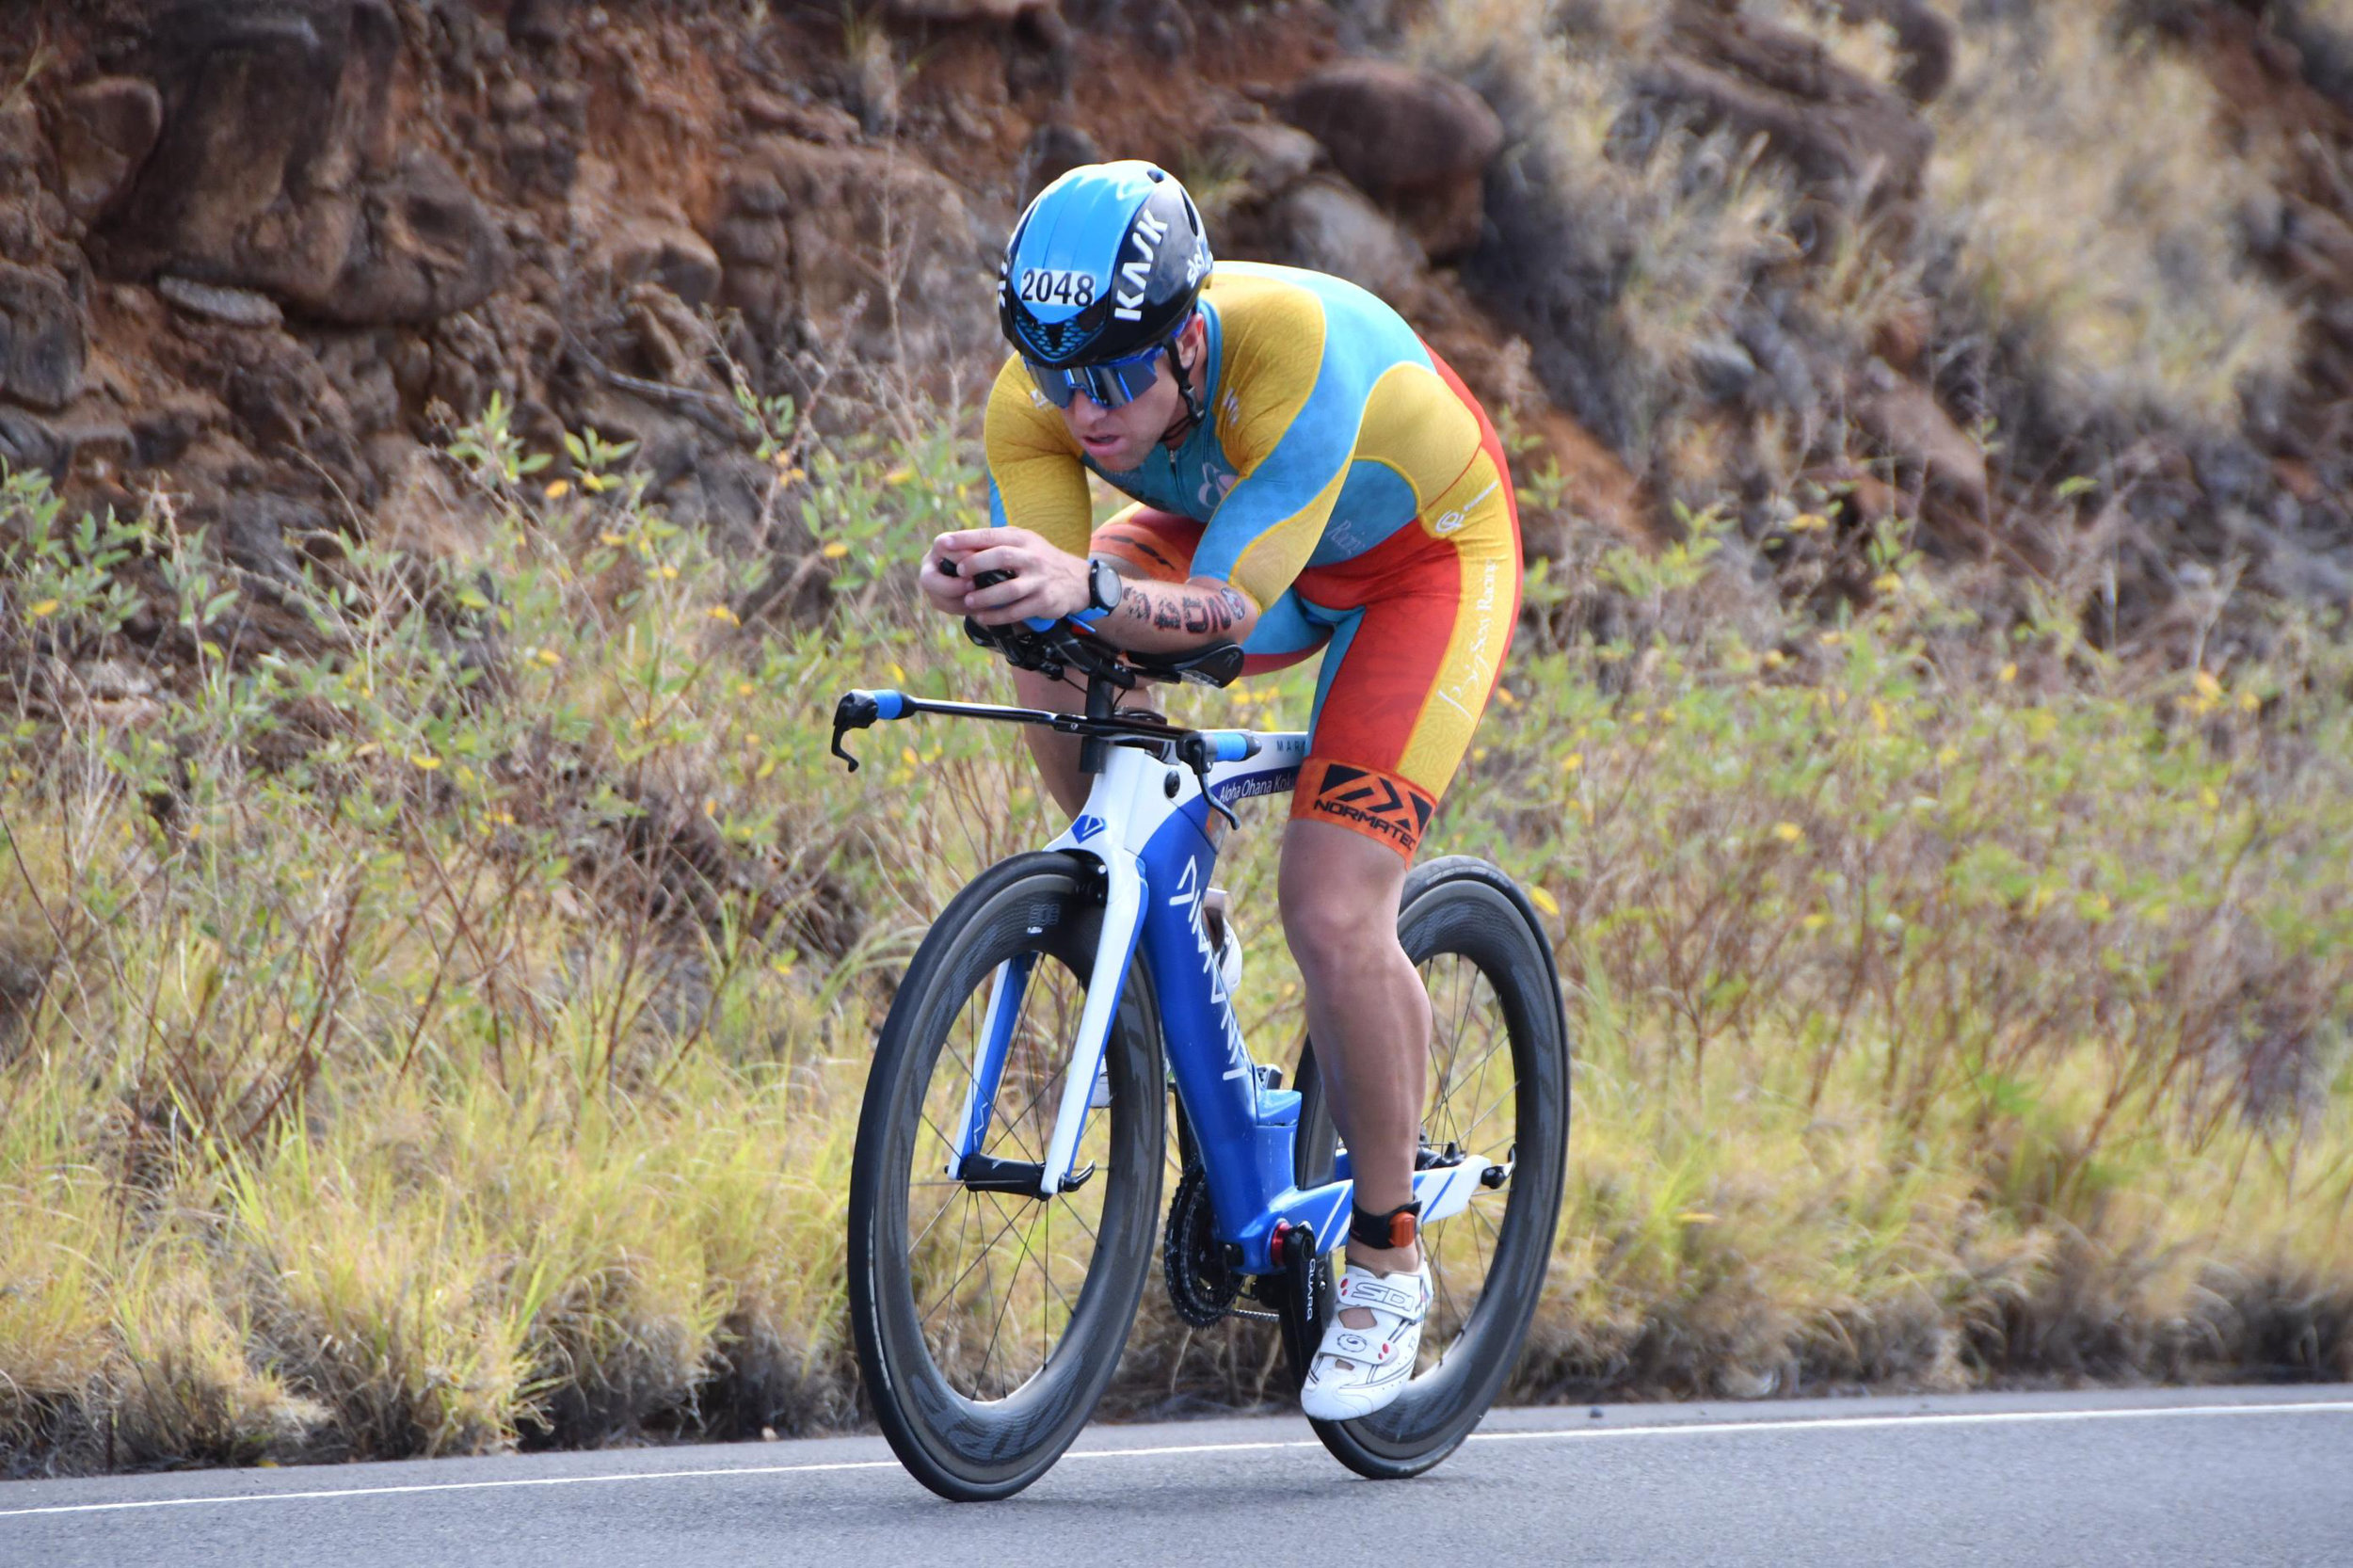 Coach_Terry_Wilson_Pursuit_of_The_Perfect_Race_IRONMAN_World_Championship_Kona_Shane_Peed_6.JPG